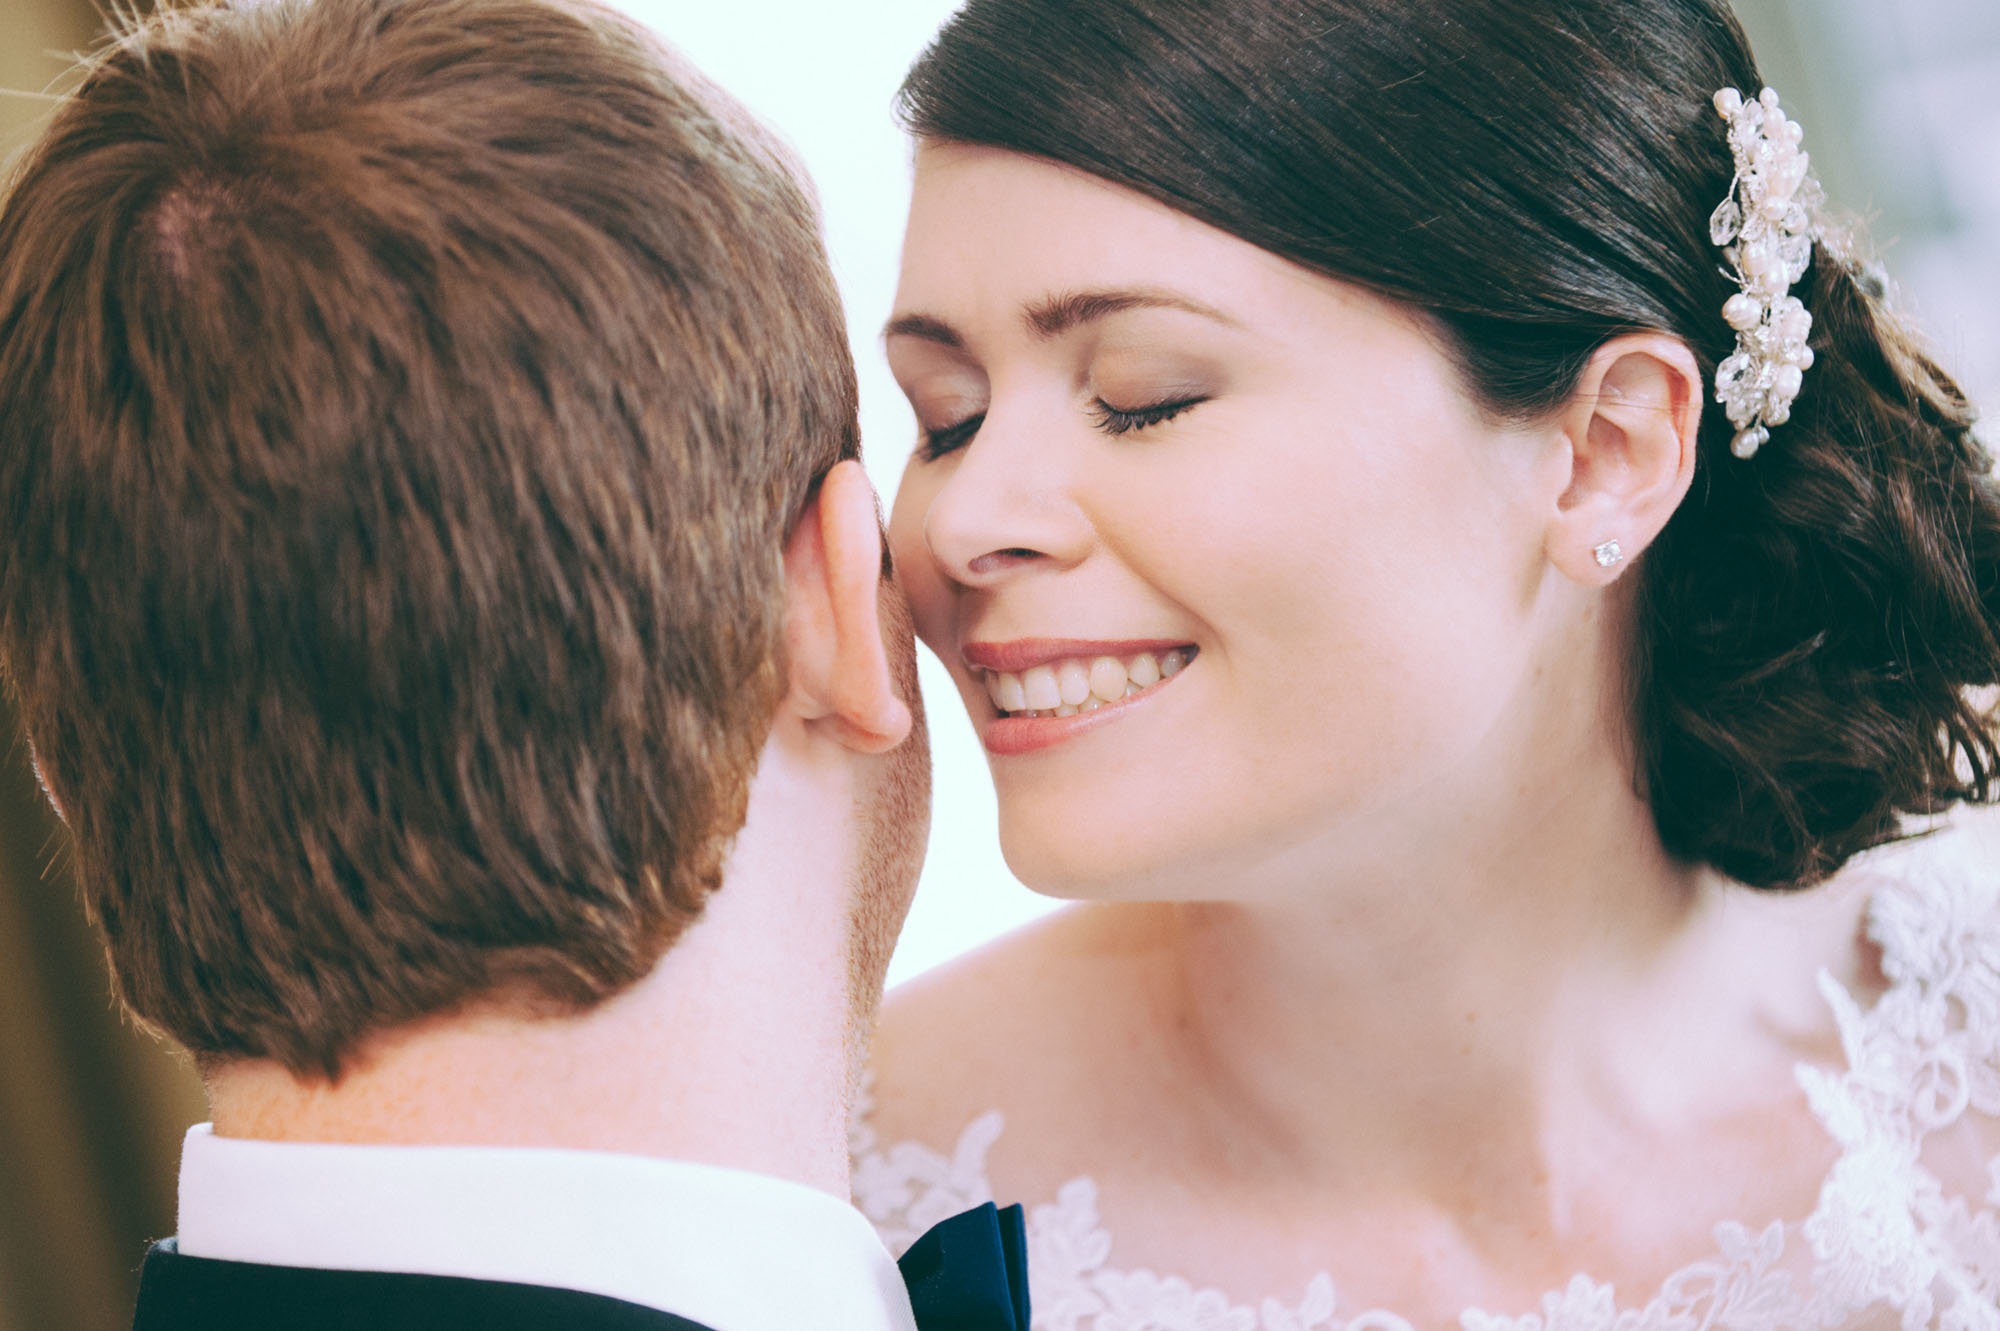 Couples Wedding Photographs Brisbane Anna Osetroff